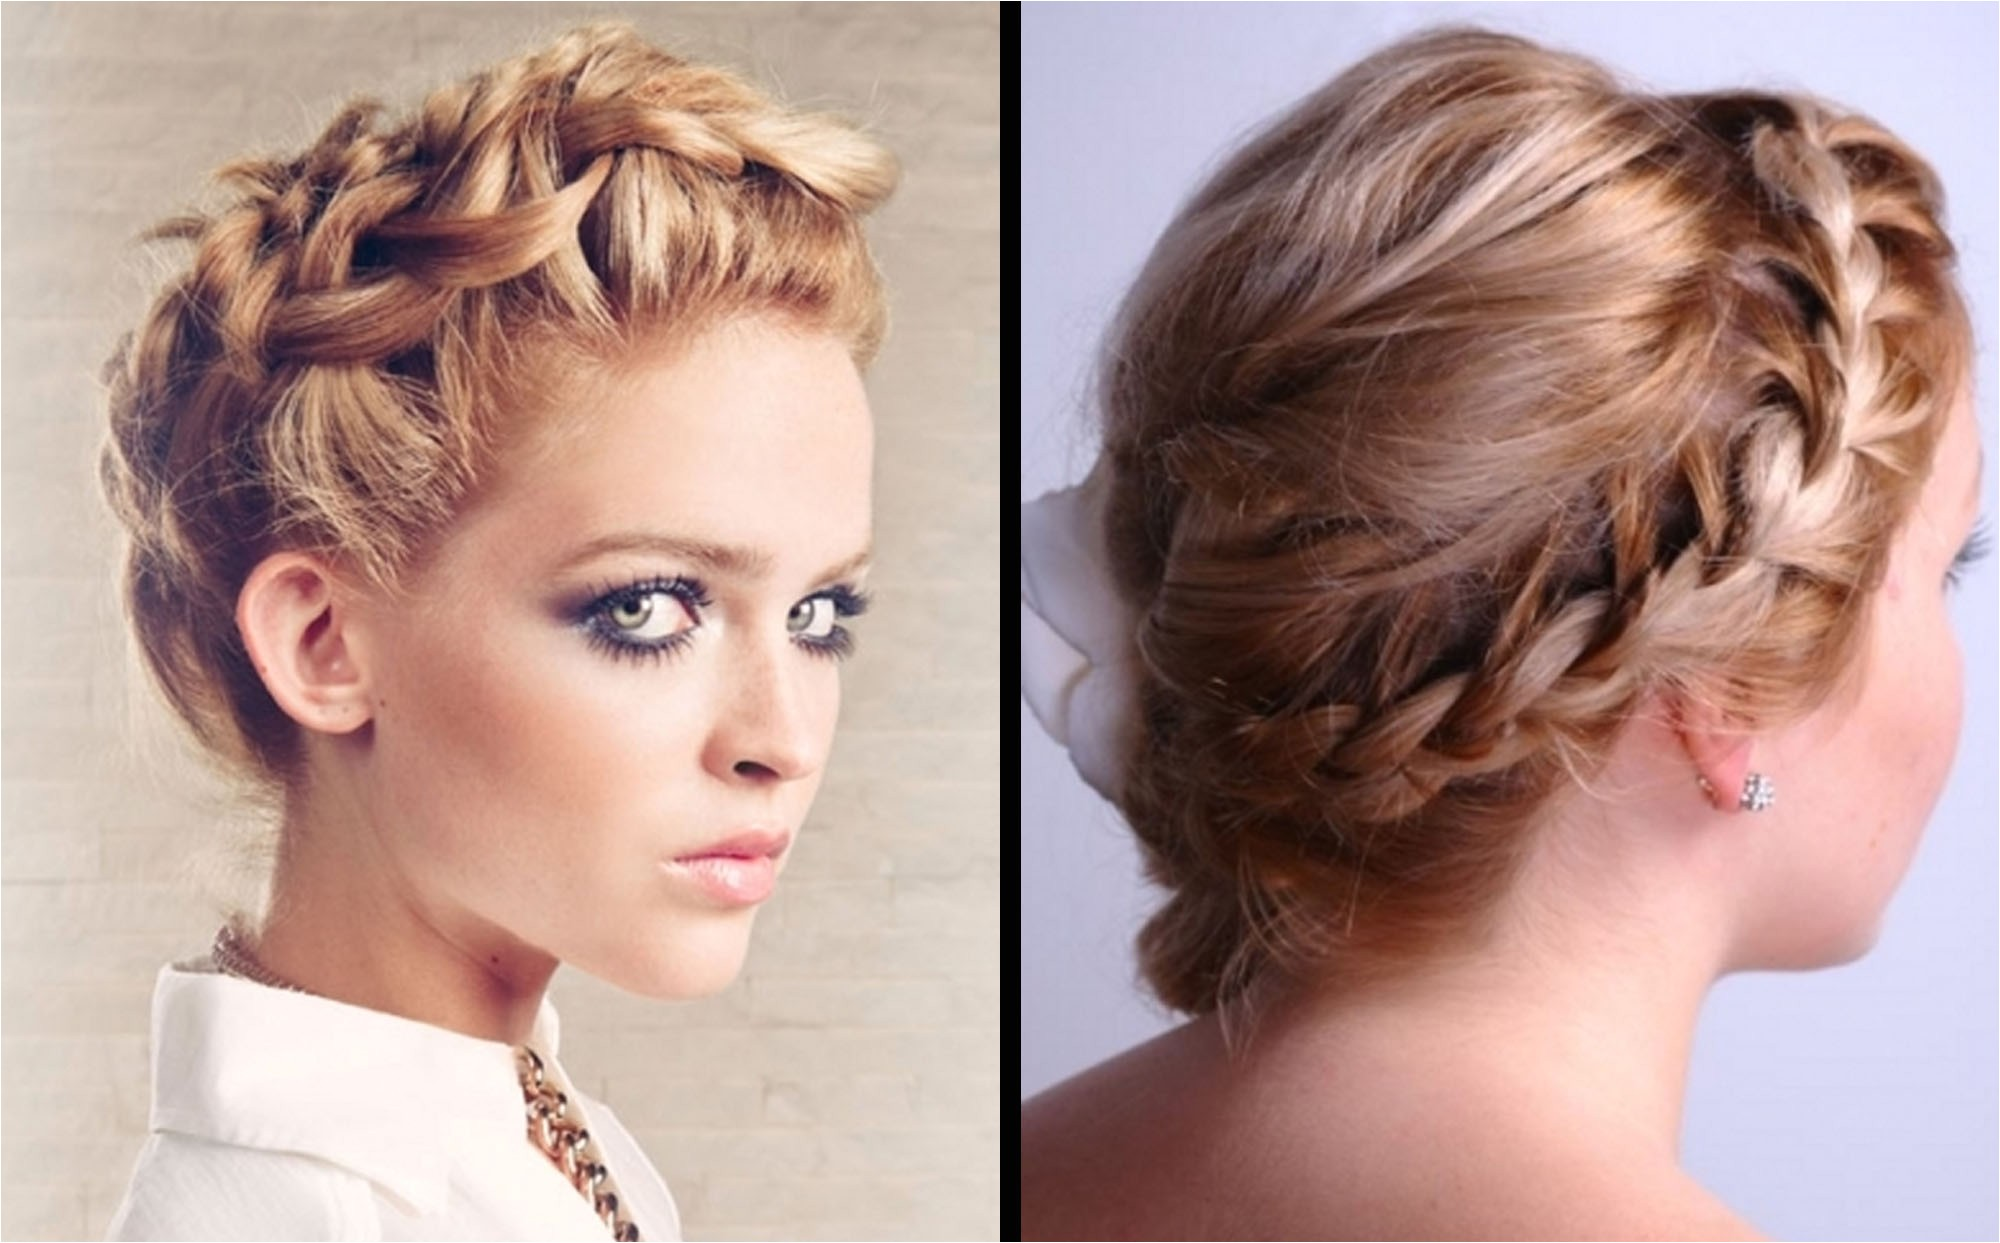 formal hairstyles of braided updo hairstyles as wedding hairdo by hair salon